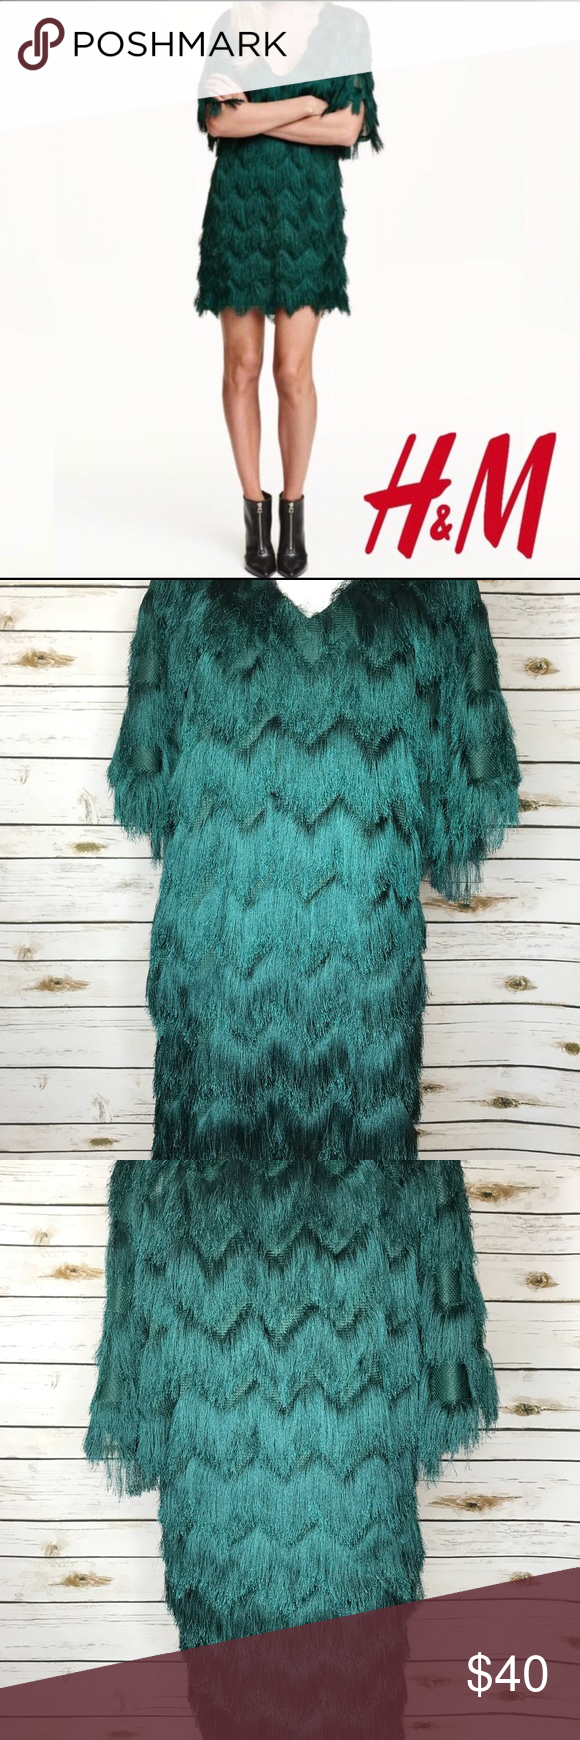 H&M Dark Green Zig Zag-Cut Fringe Mini Dress NWT NWT Great Holiday ...